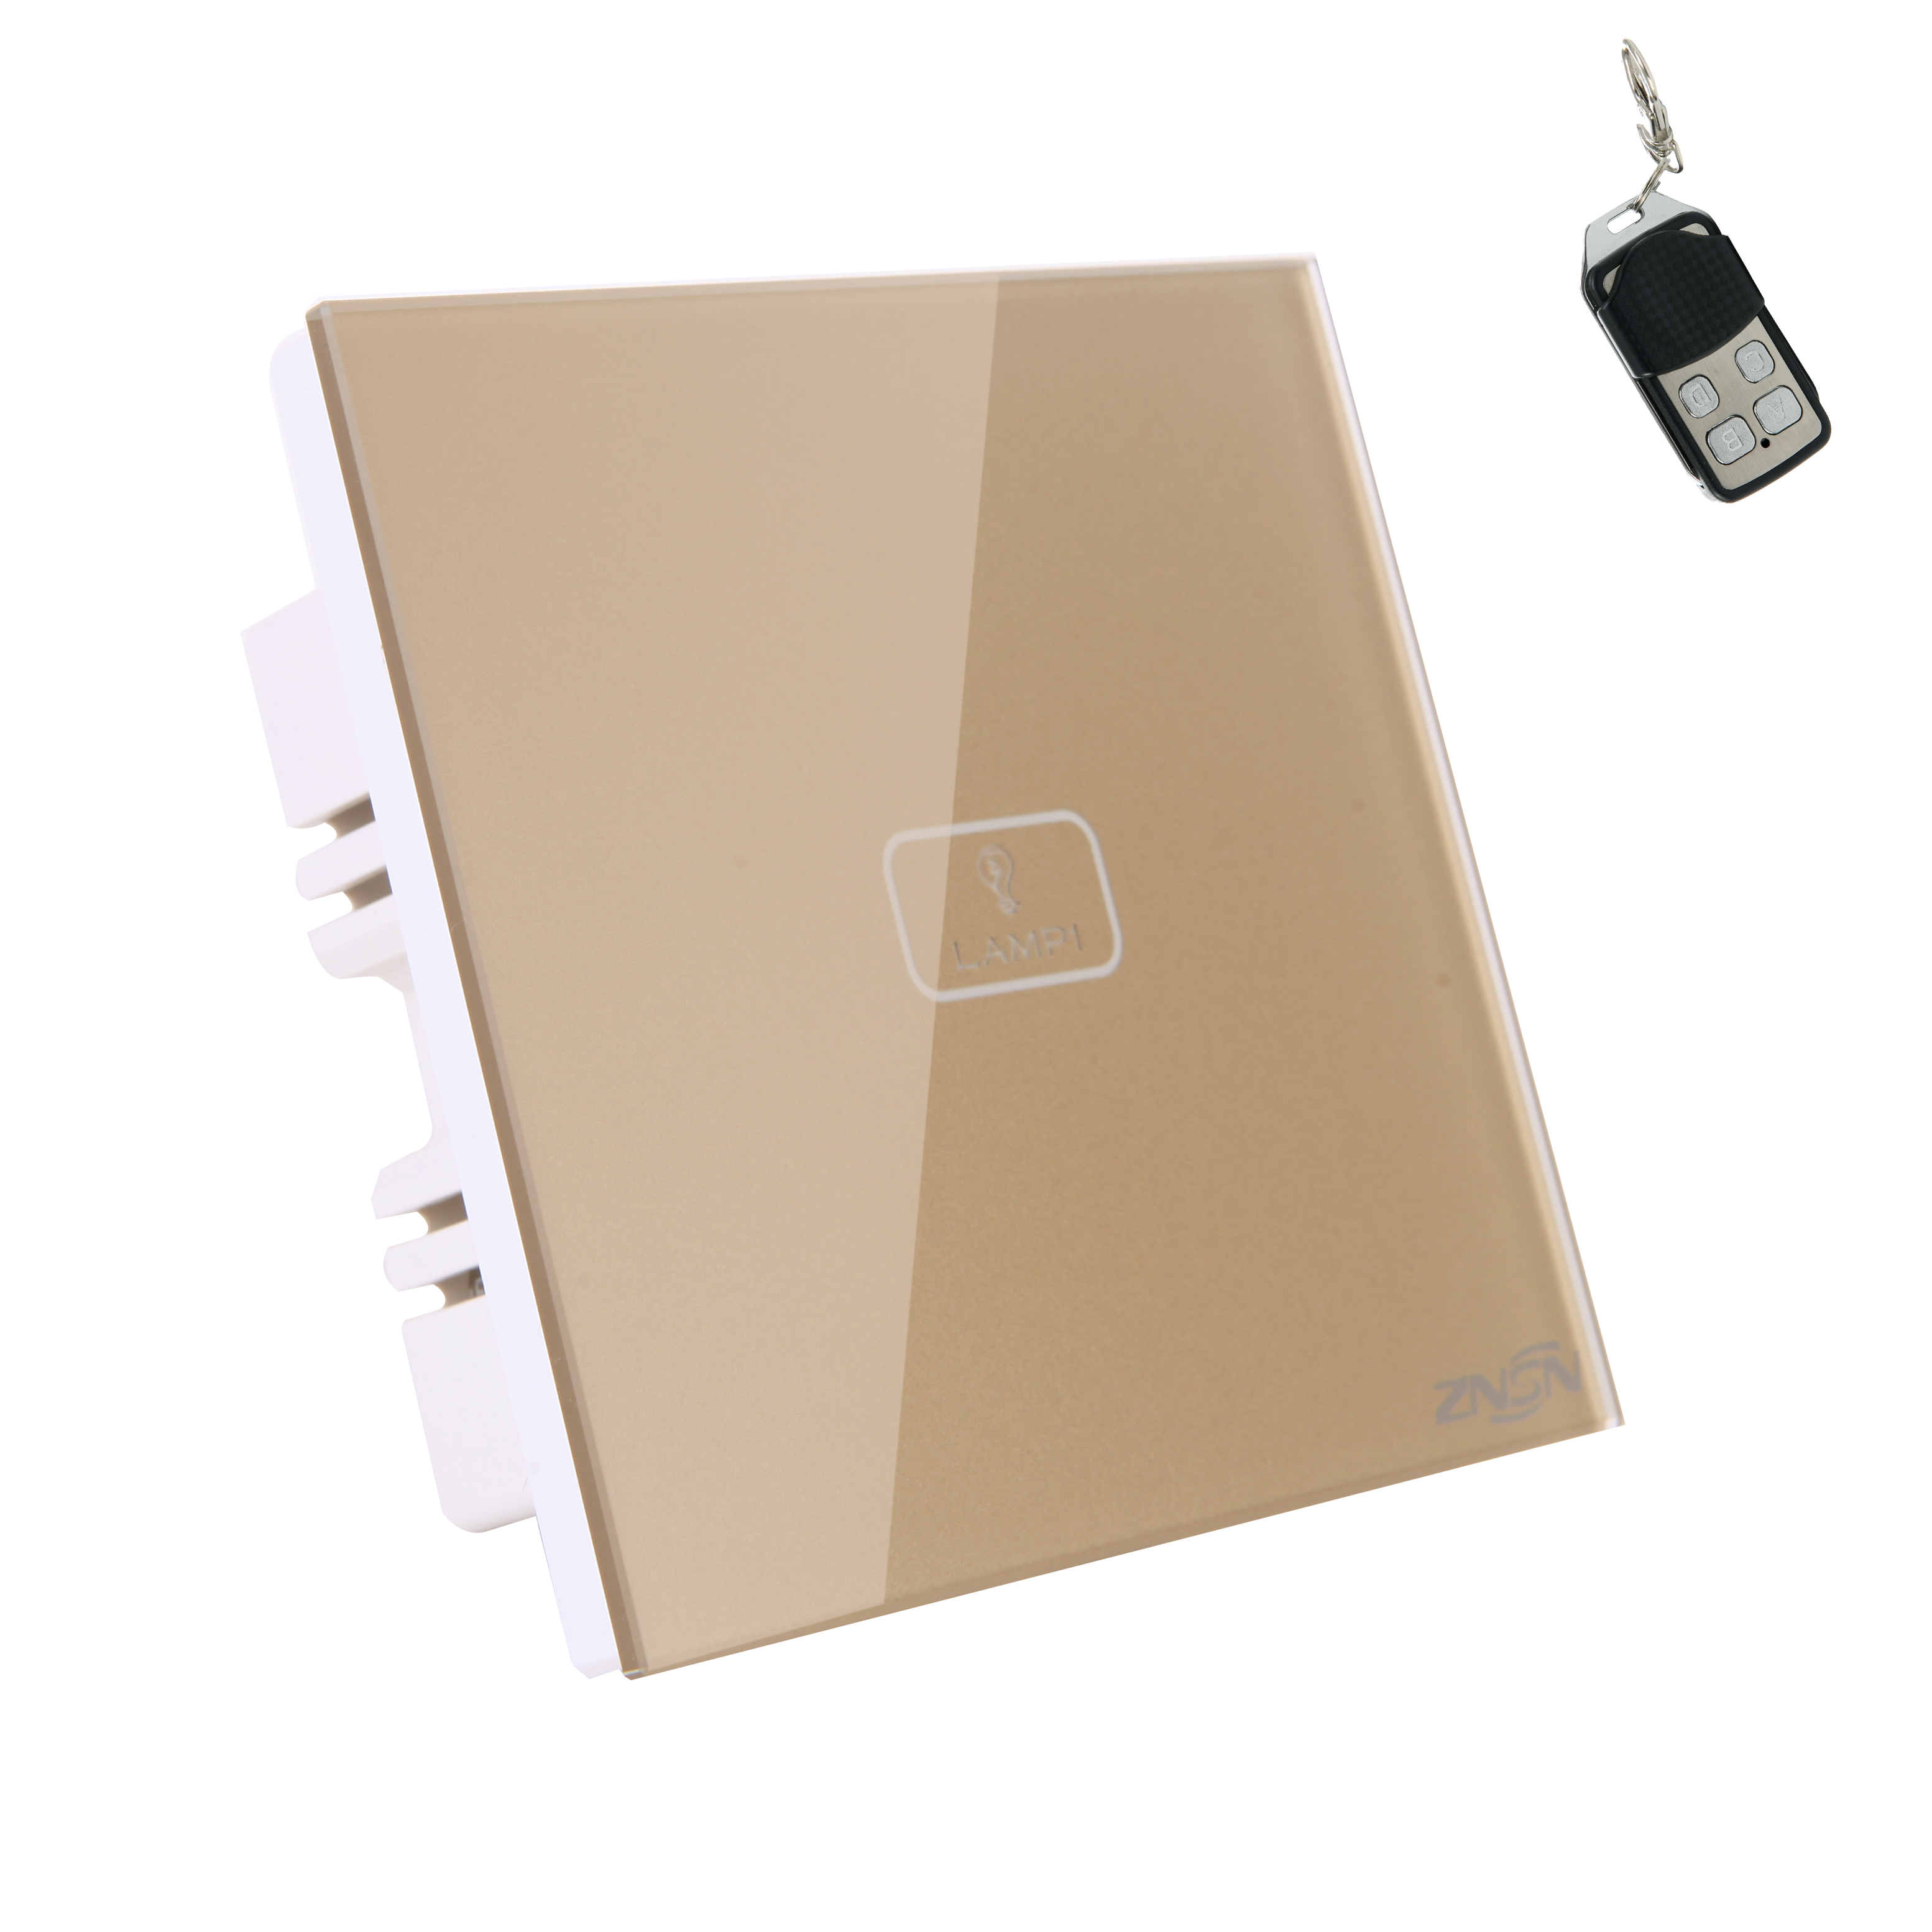 1 Gang 1 Way 220V Luxury Champagne Crystal Glass Panel Led Lamp 315MHZ 433MHZ rf Touch Wall Light Remote Control Switch(China (Mainland))